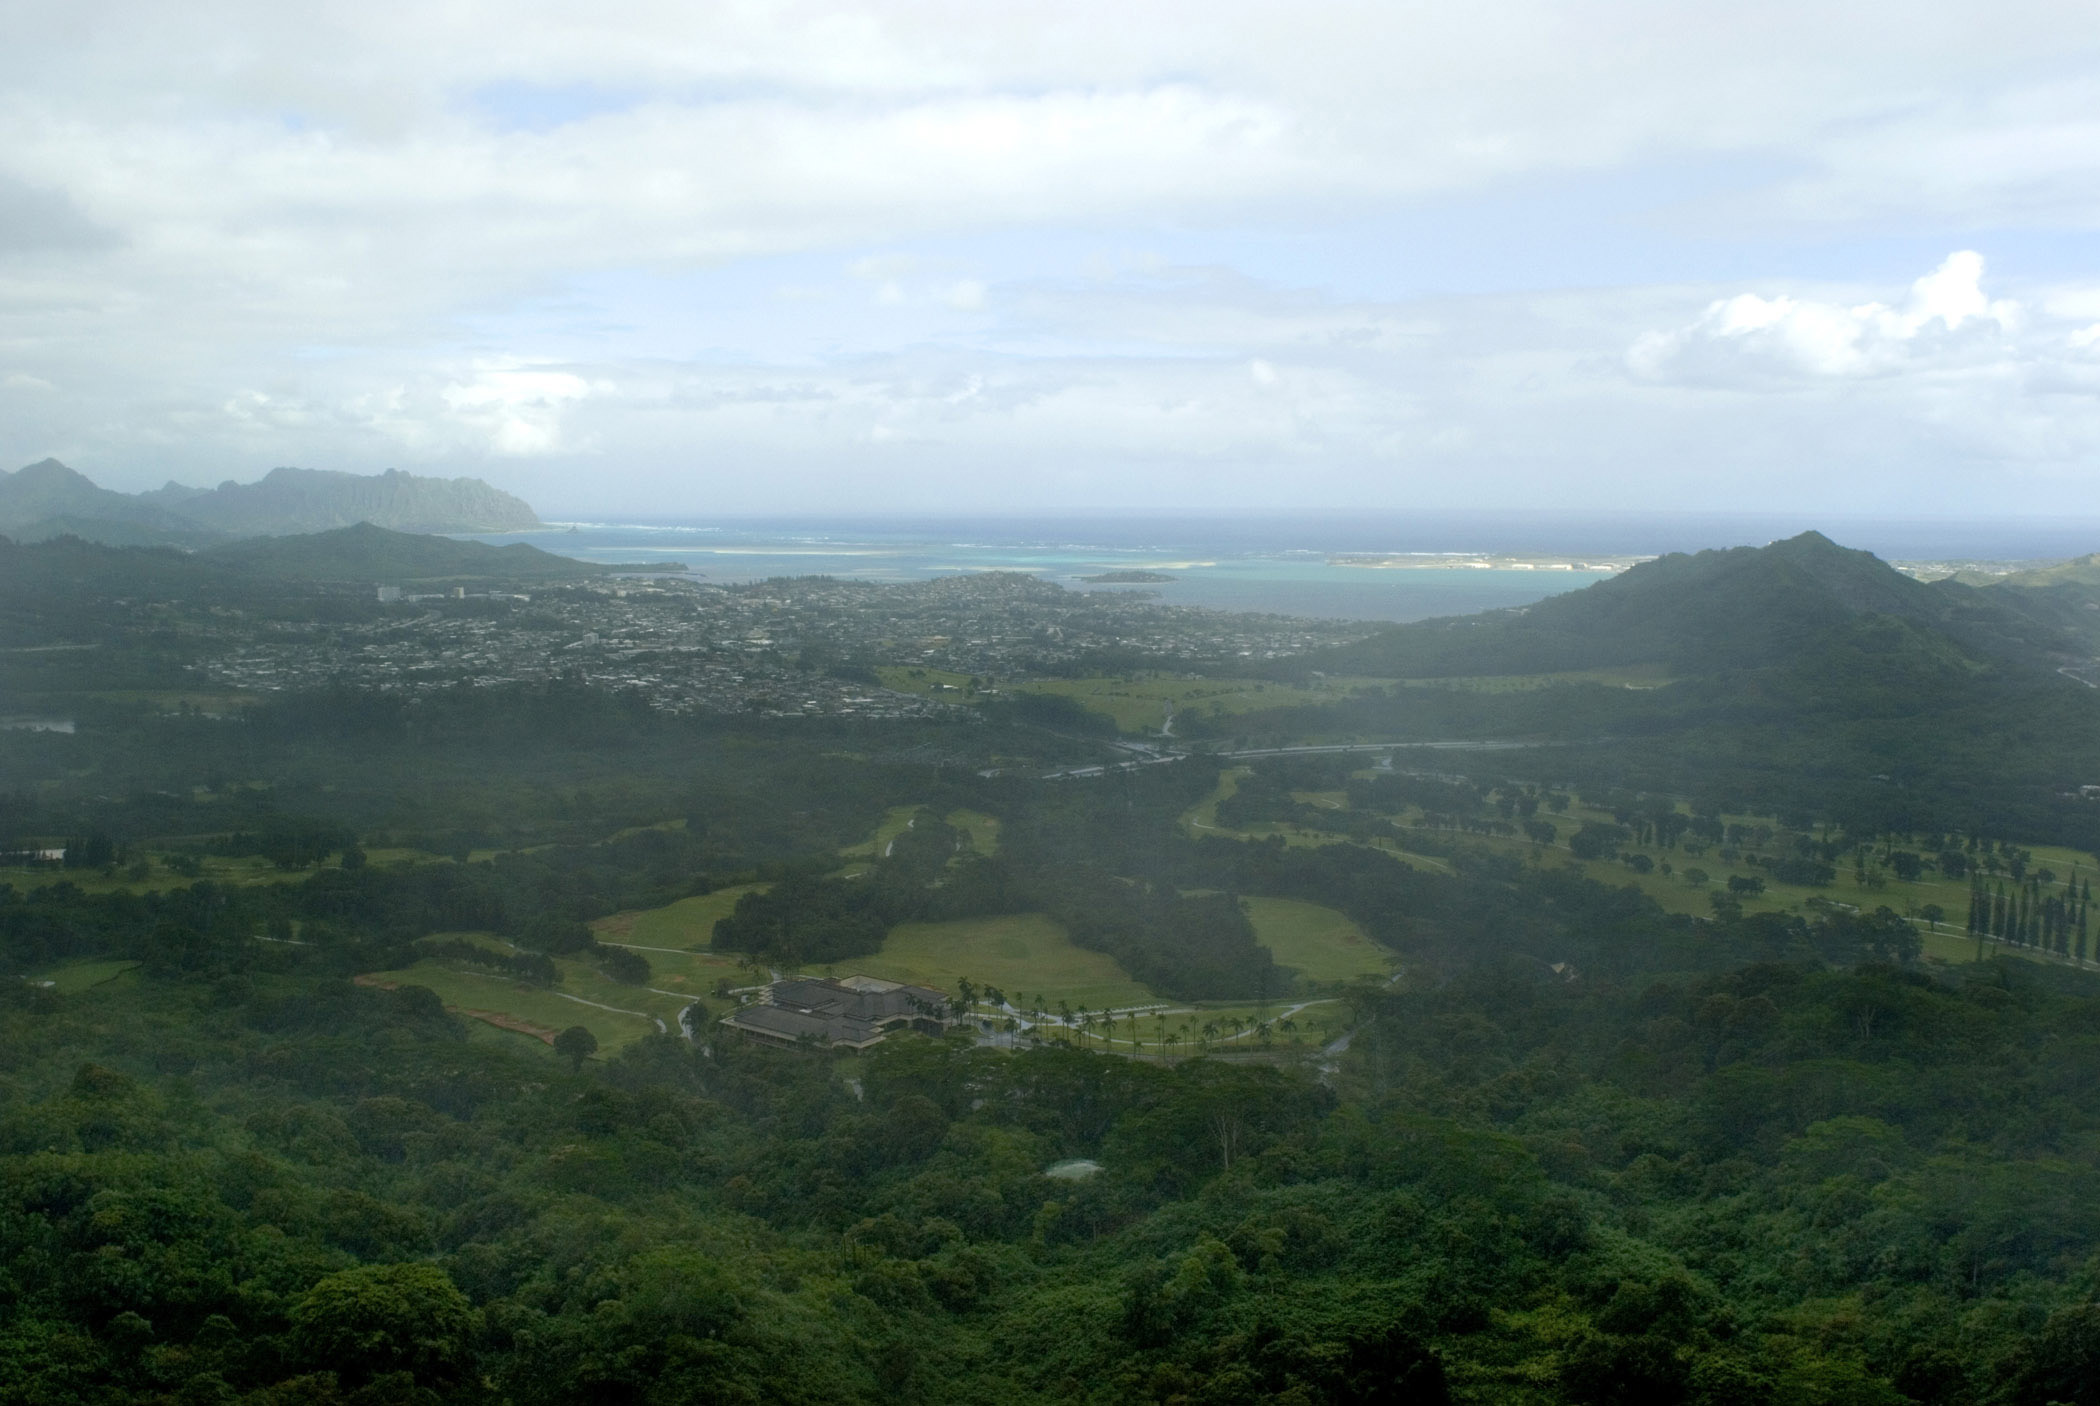 Looking East from Nuuanu Pali Lookout Towards Ocean, Hawaii